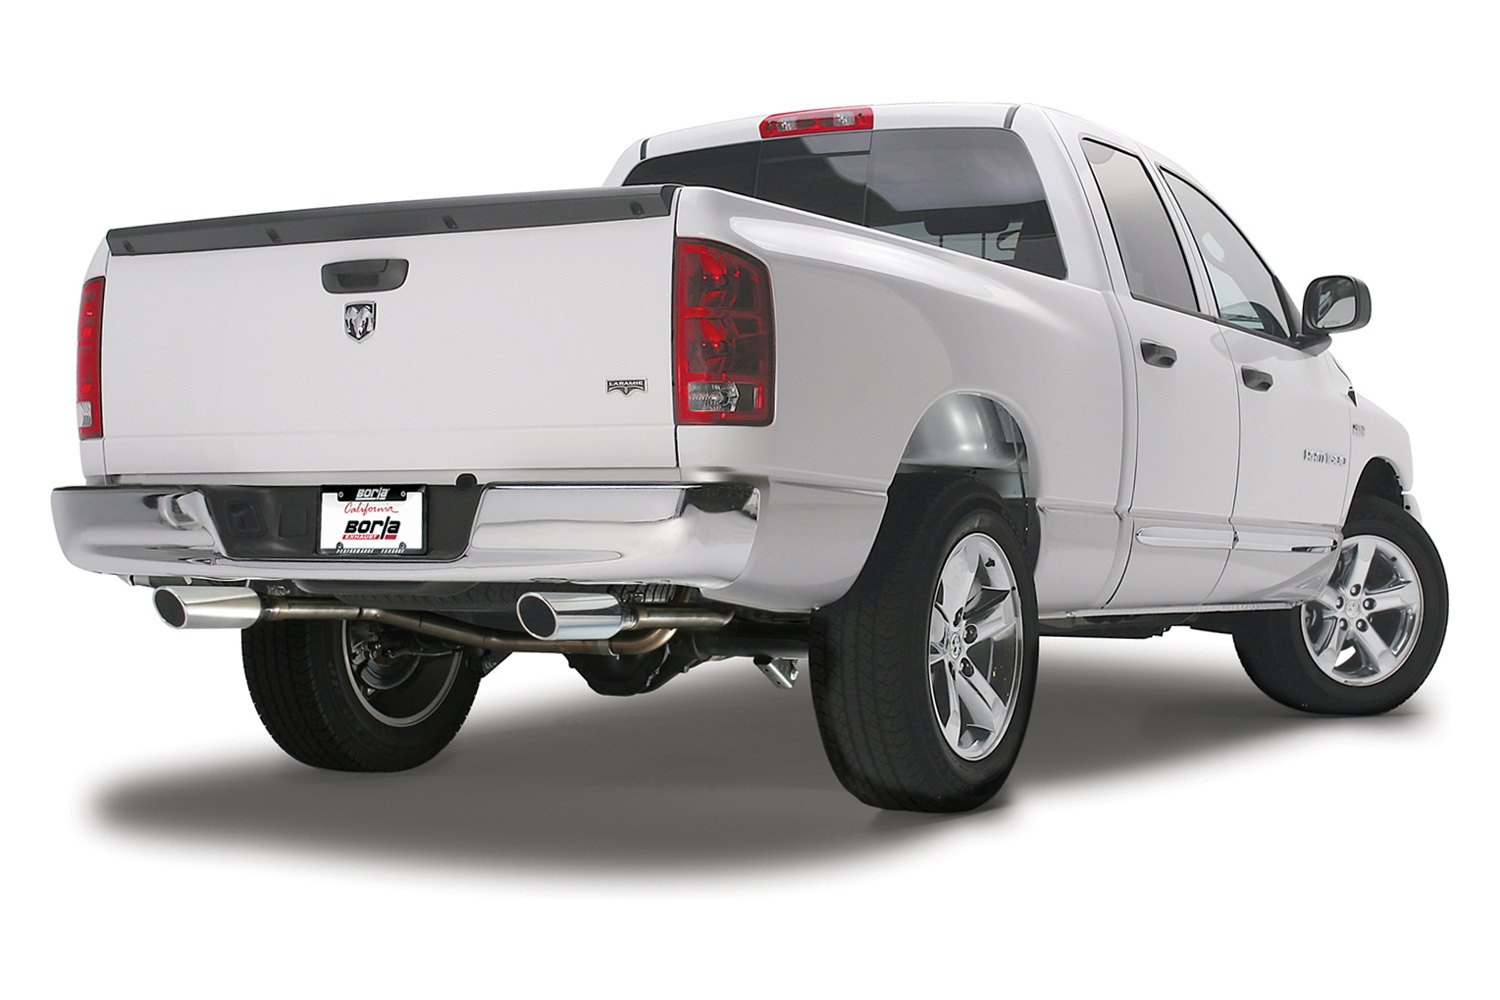 borla s type stainless steel cat back exhaust system with split rear exit